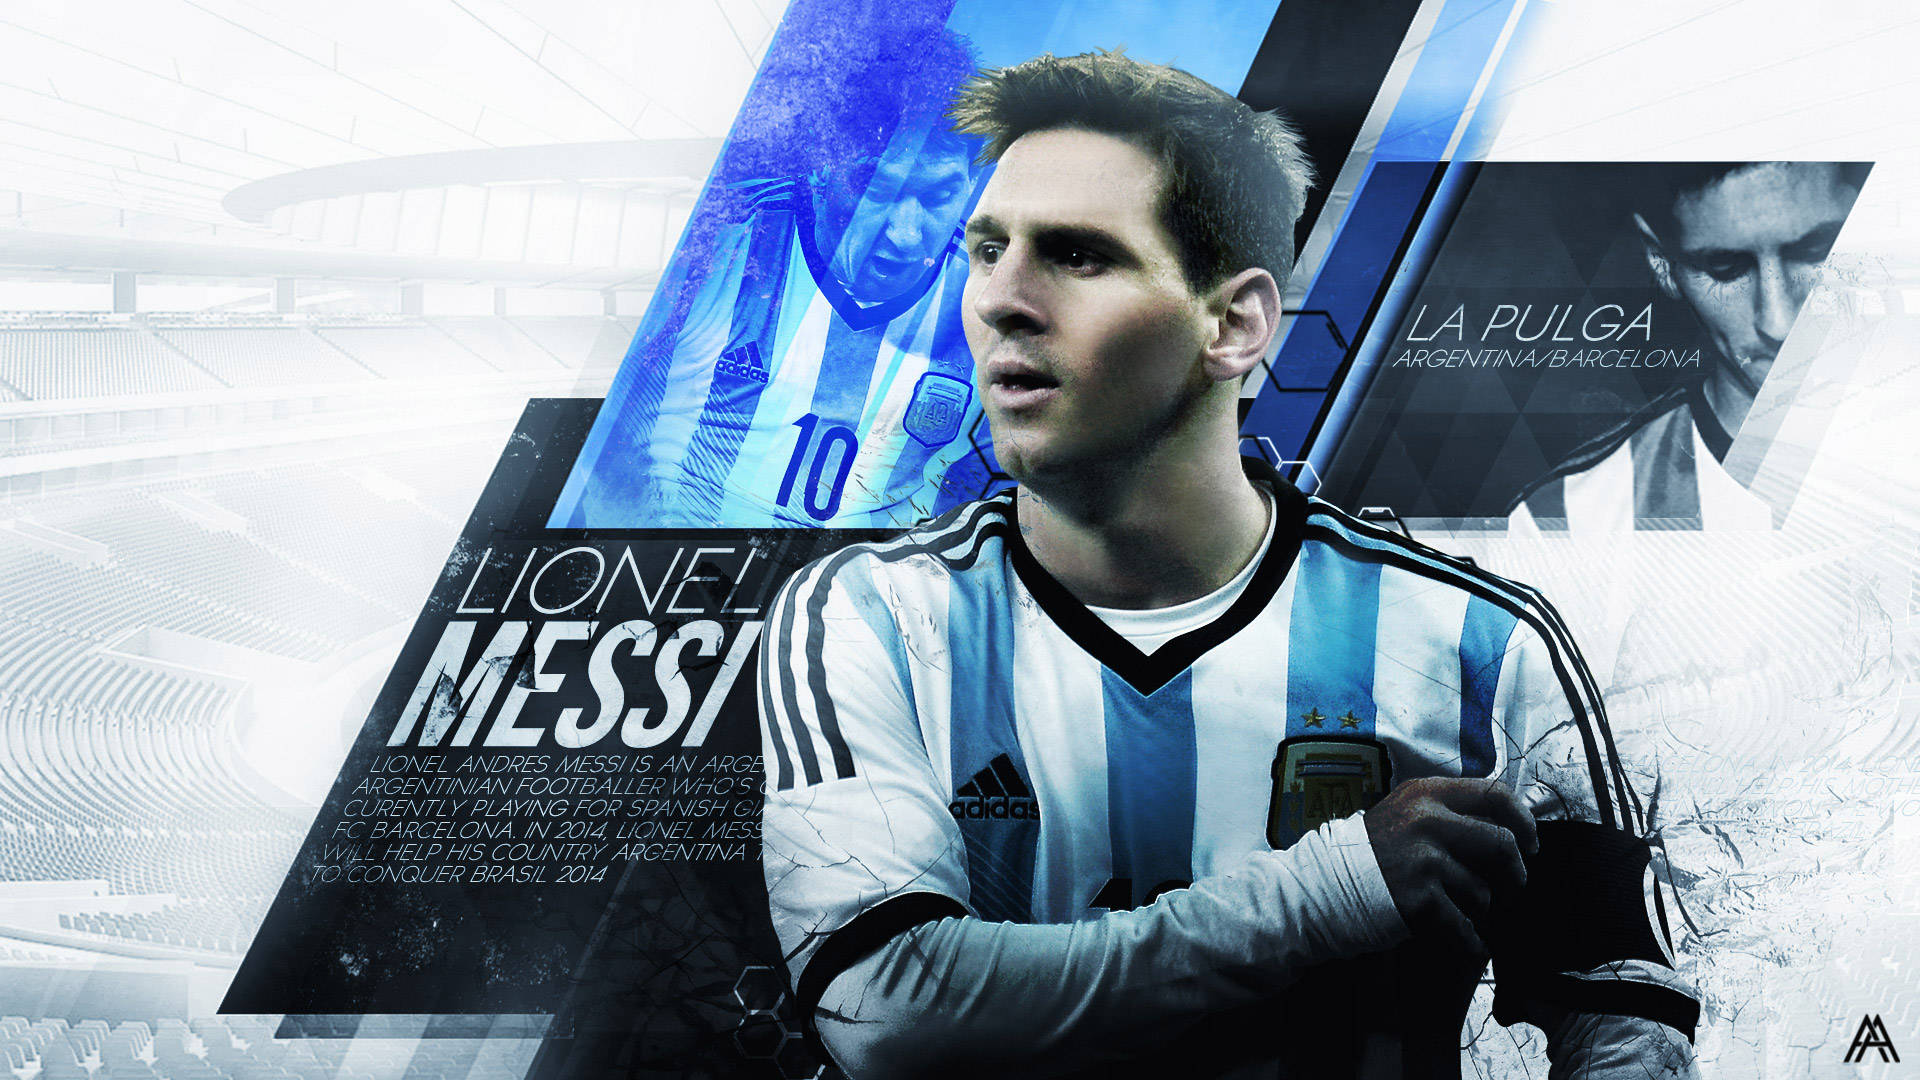 Cool Iphone Wallpapers Hd Lionel Messi Hd Wallpapers The Nology